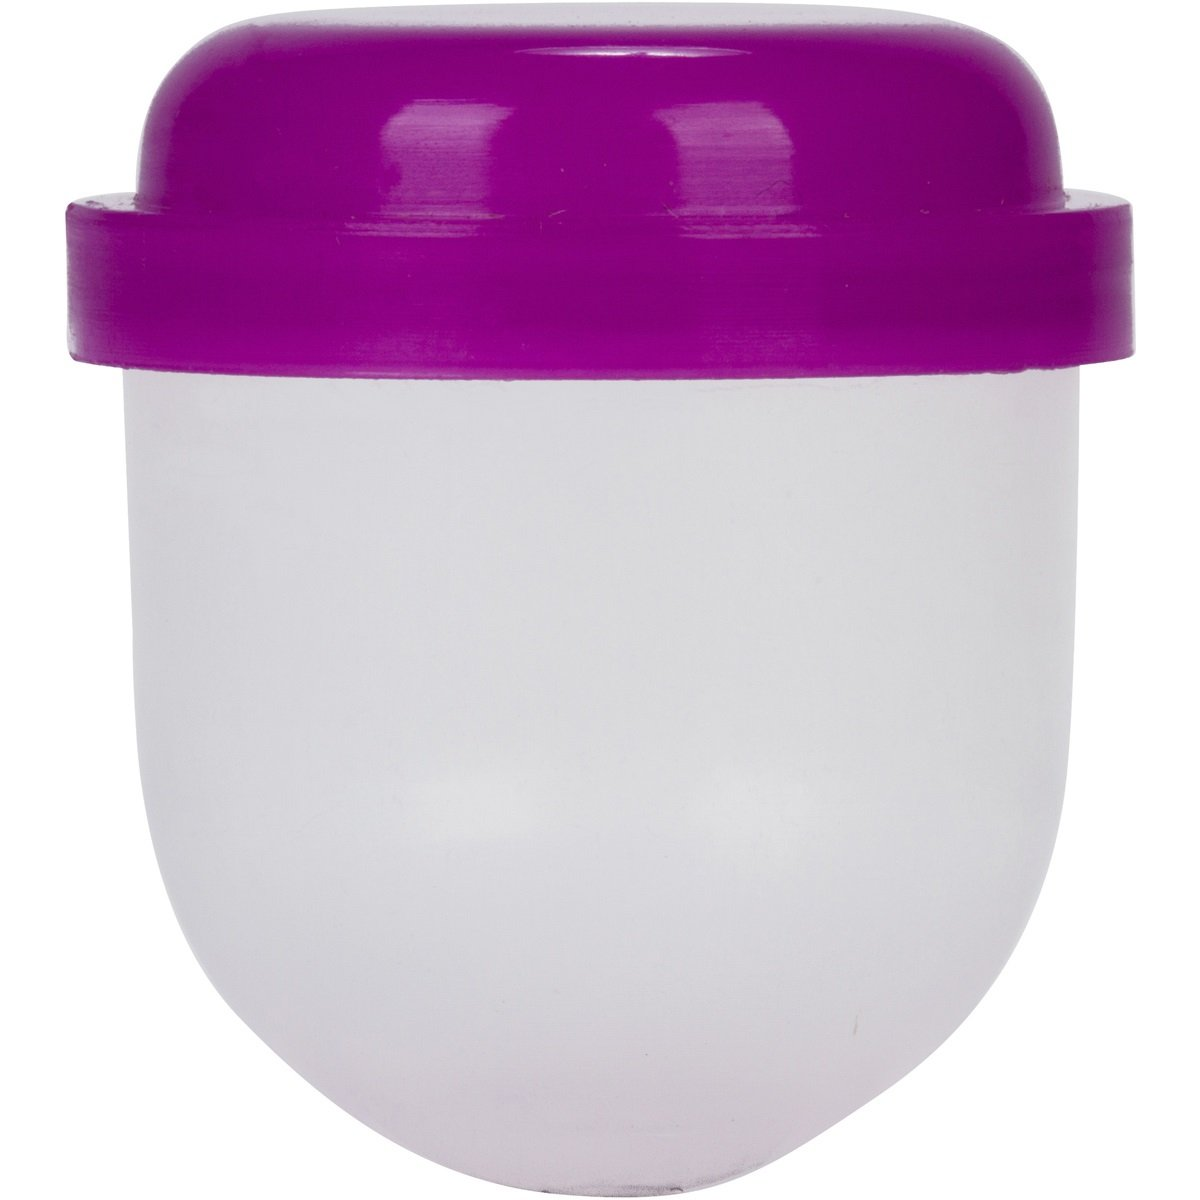 1'' Acorn Capsules: Pink, Blue, Purple Vending Machine Balls, Empty Cases for Gumball Containers, Toy Stands, and Party Favors or Bath Bombs, Rainbow Colored Lids and Clear Bottoms Girls by Candy Machines (Image #7)